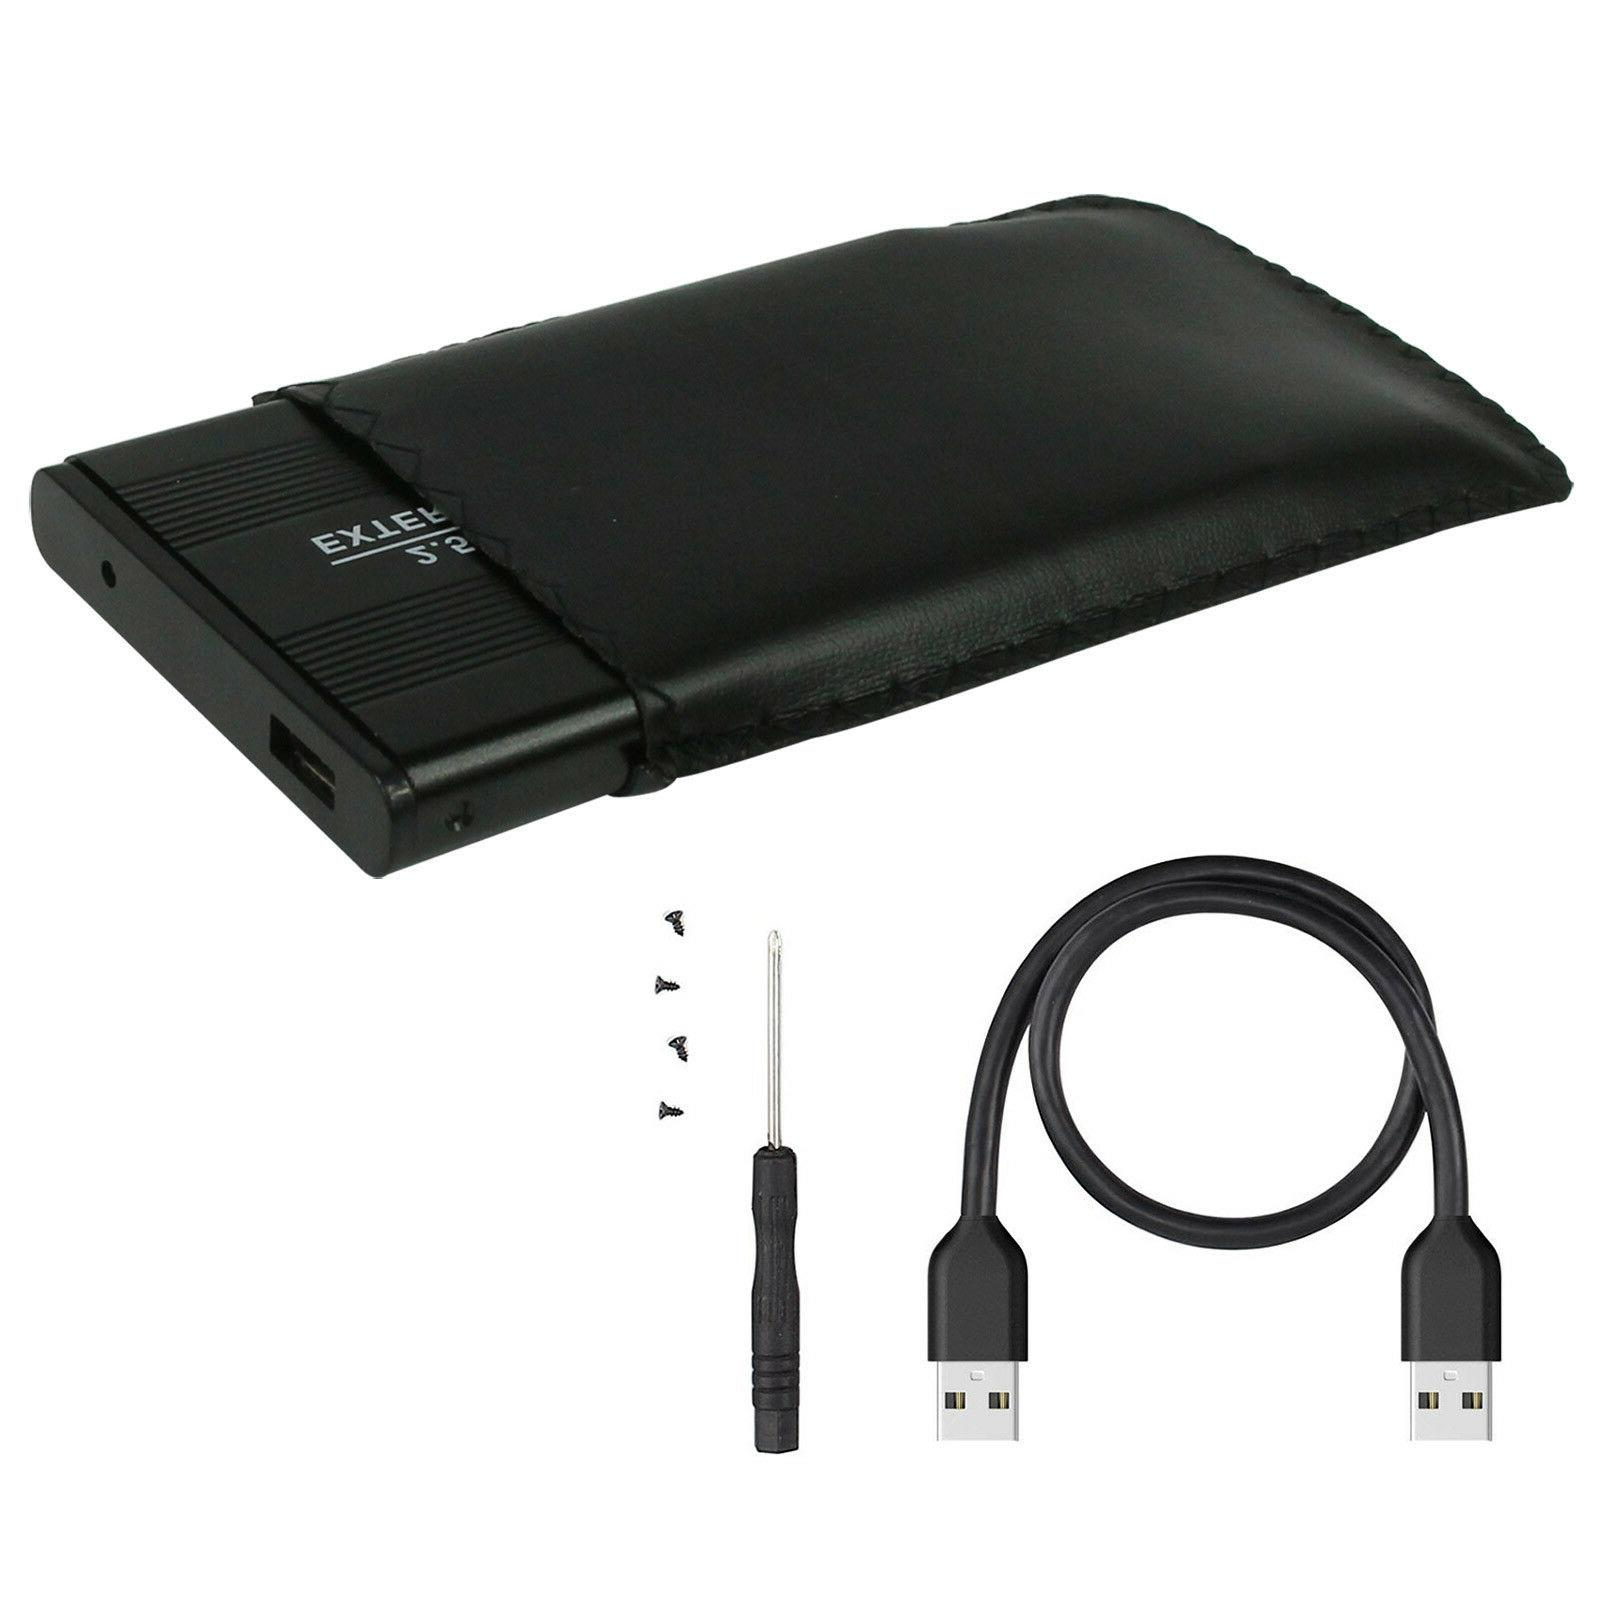 3.0 External USB 2.5 SATA HDD Hard Disk Drive Enclosure Cadd